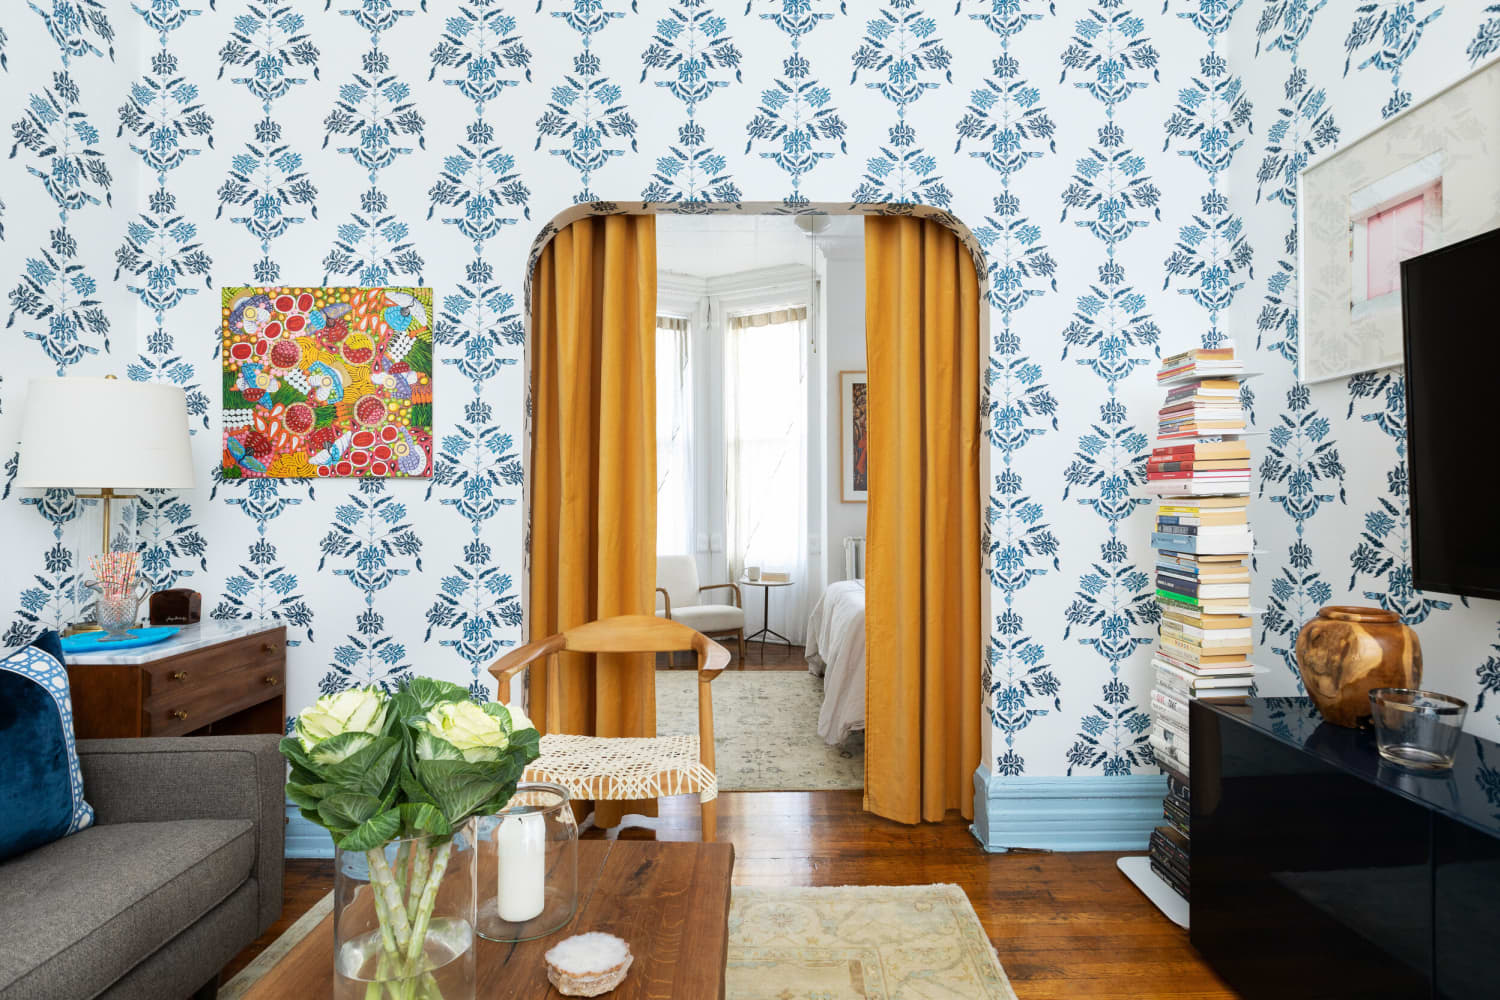 These $75 IKEA Curtains Might Be the Chicest Room Divider We've Ever Seen